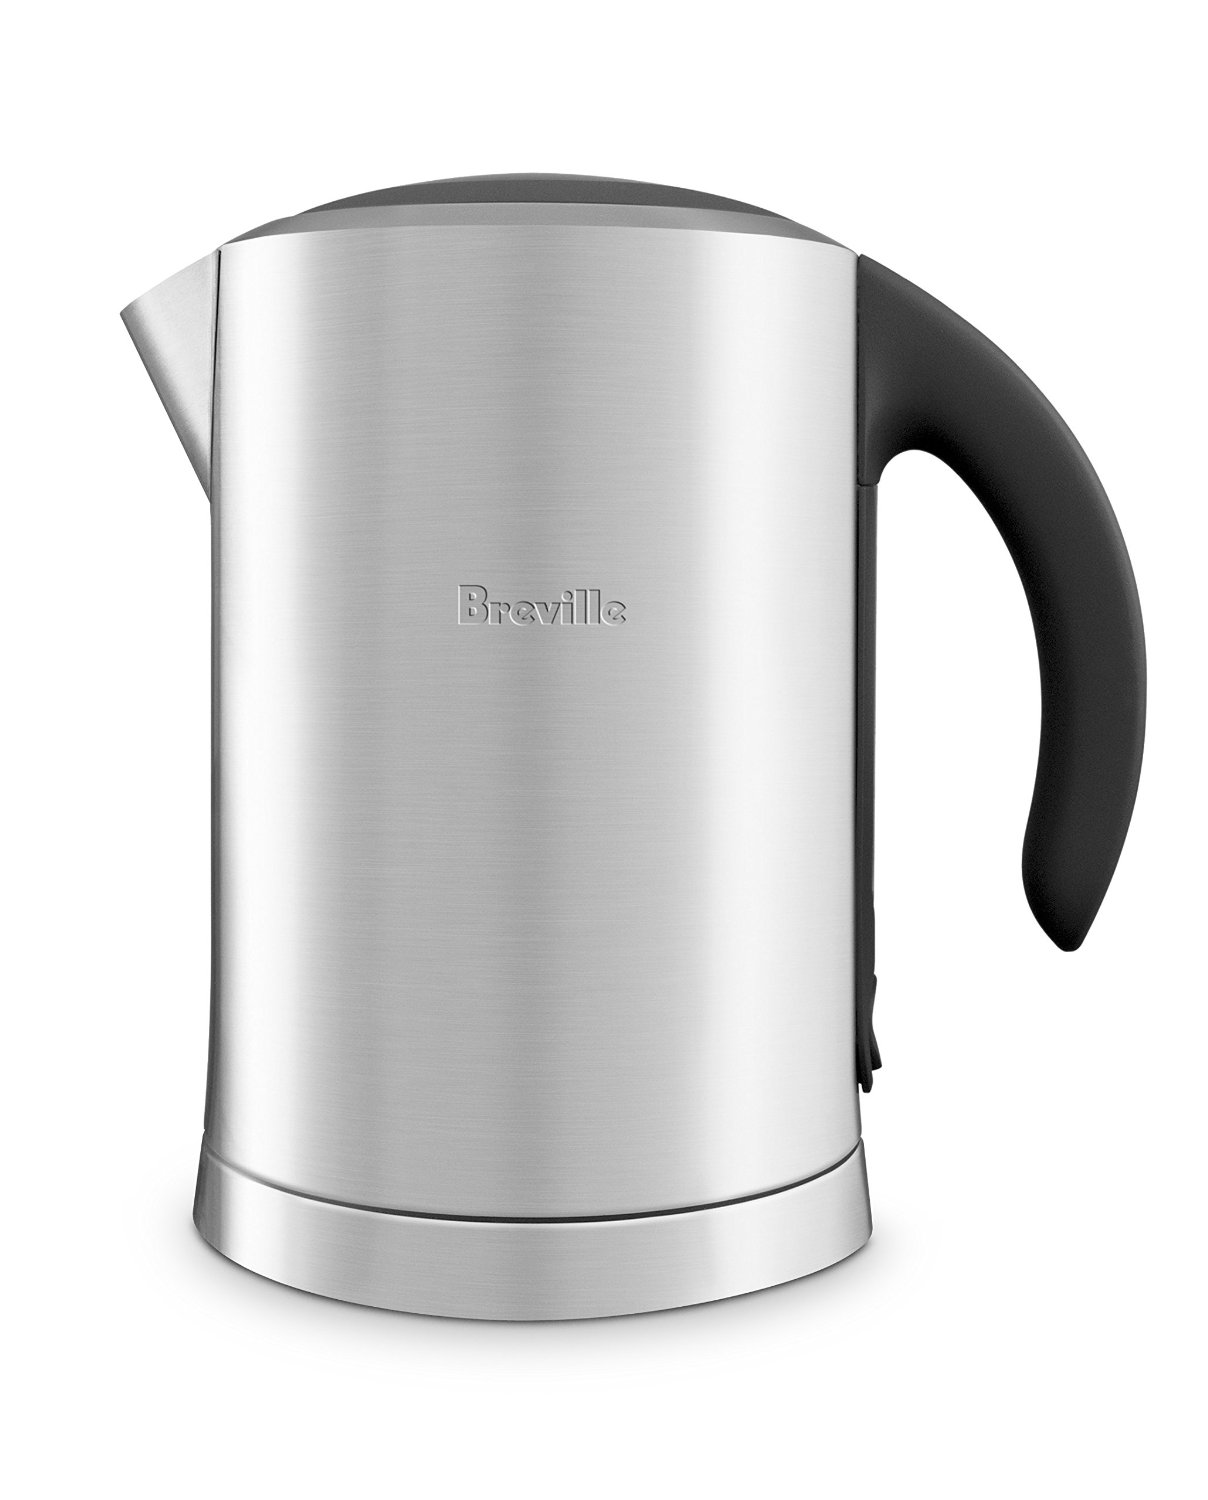 Breville SK500XL Ikon Cordless 1.7-L Electric Kettle